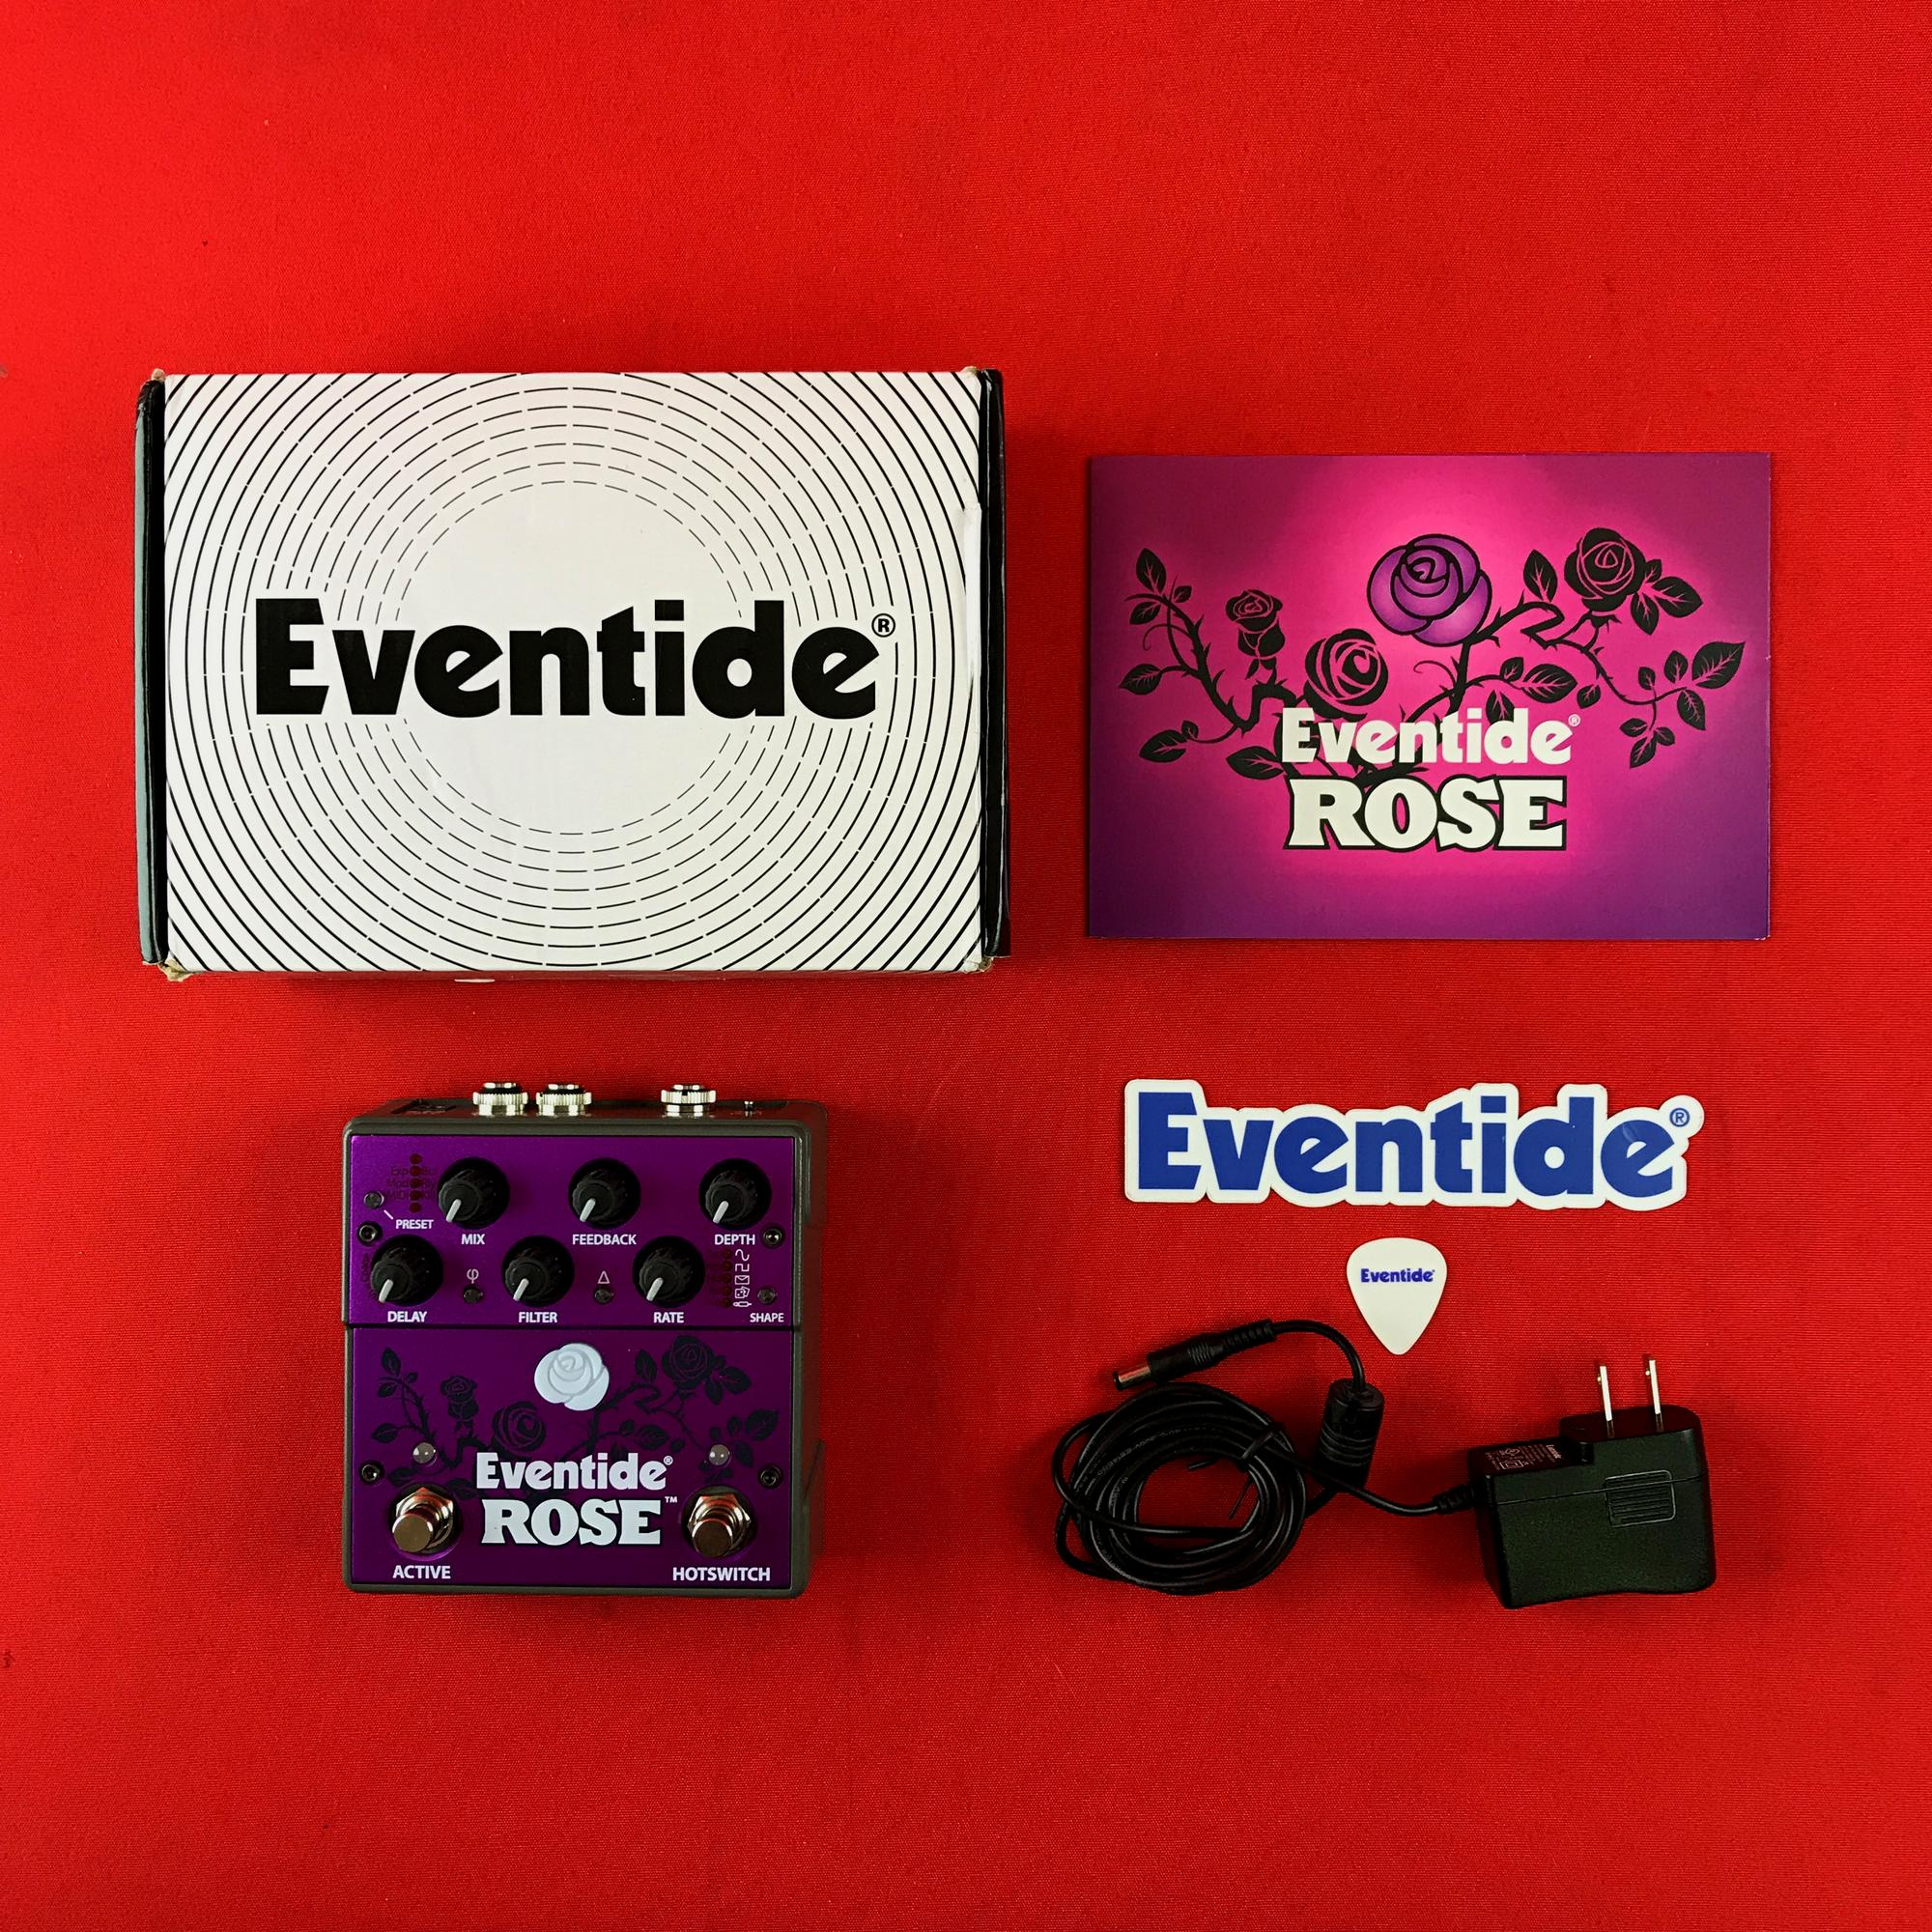 [USED] Eventide Rose Modulated Delay